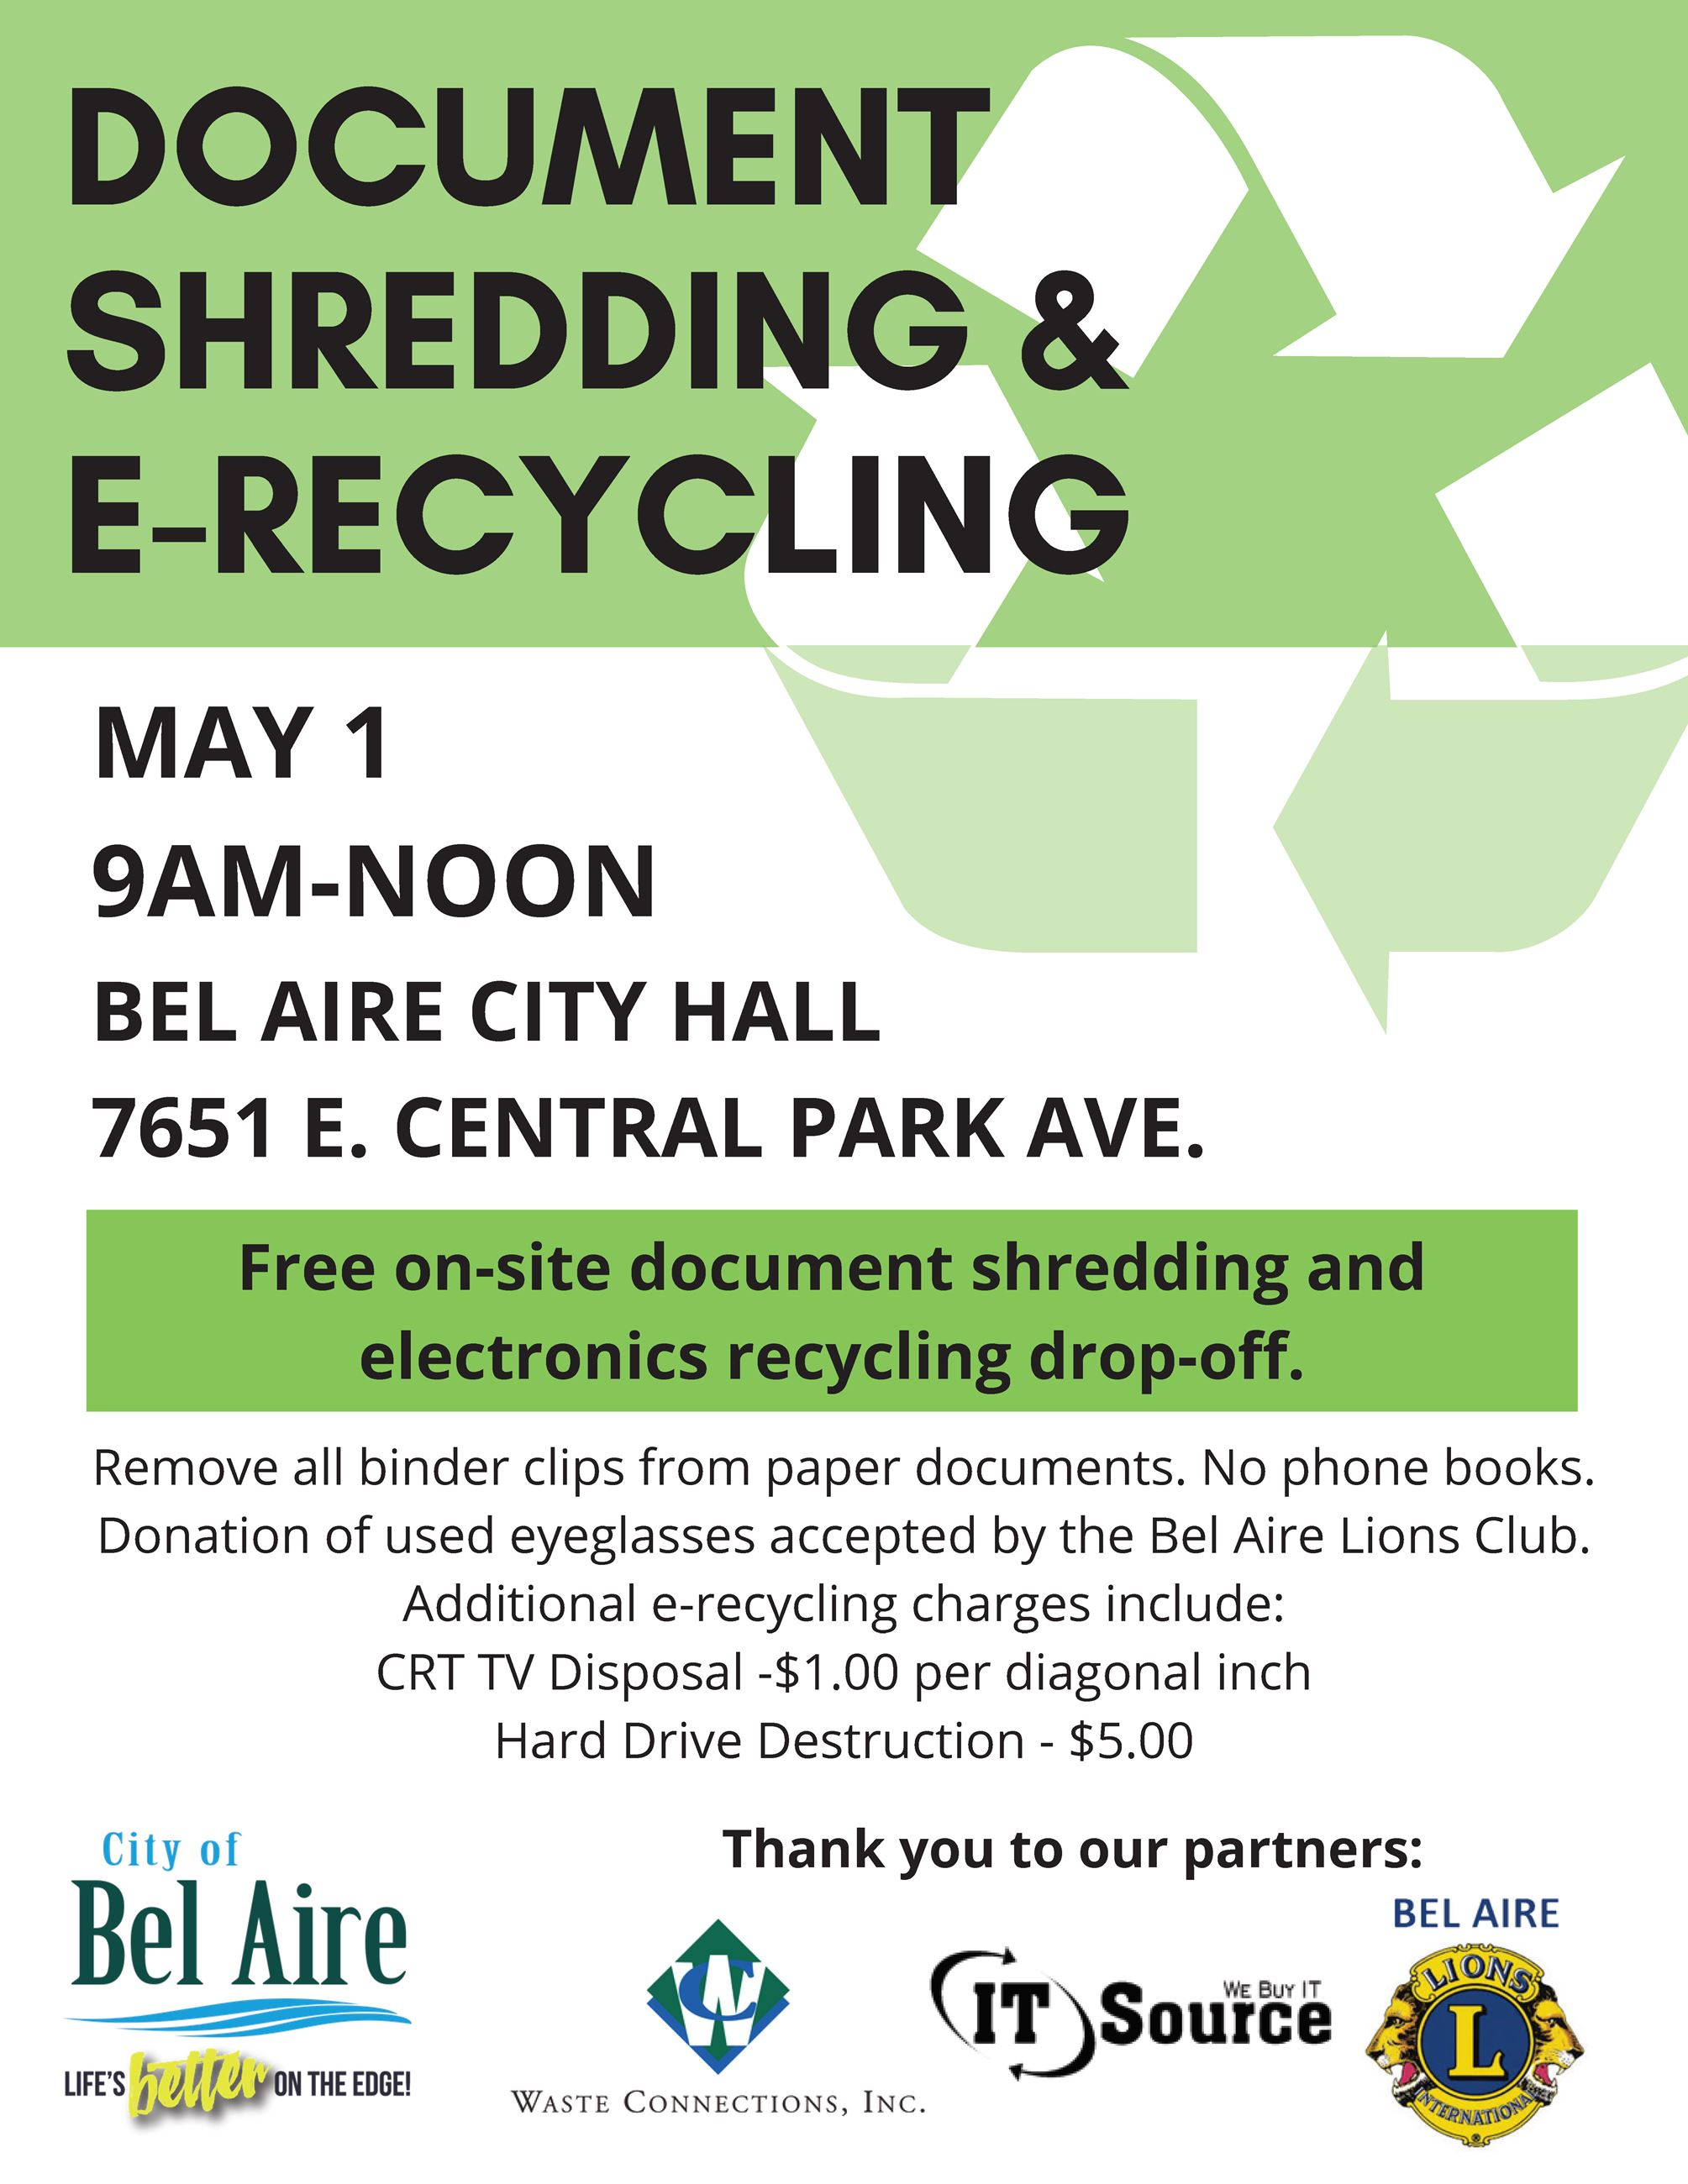 Document and e-recycling event on May 1st at 9:00 a.m. to noon at Bel Aire City Hall parking lot.